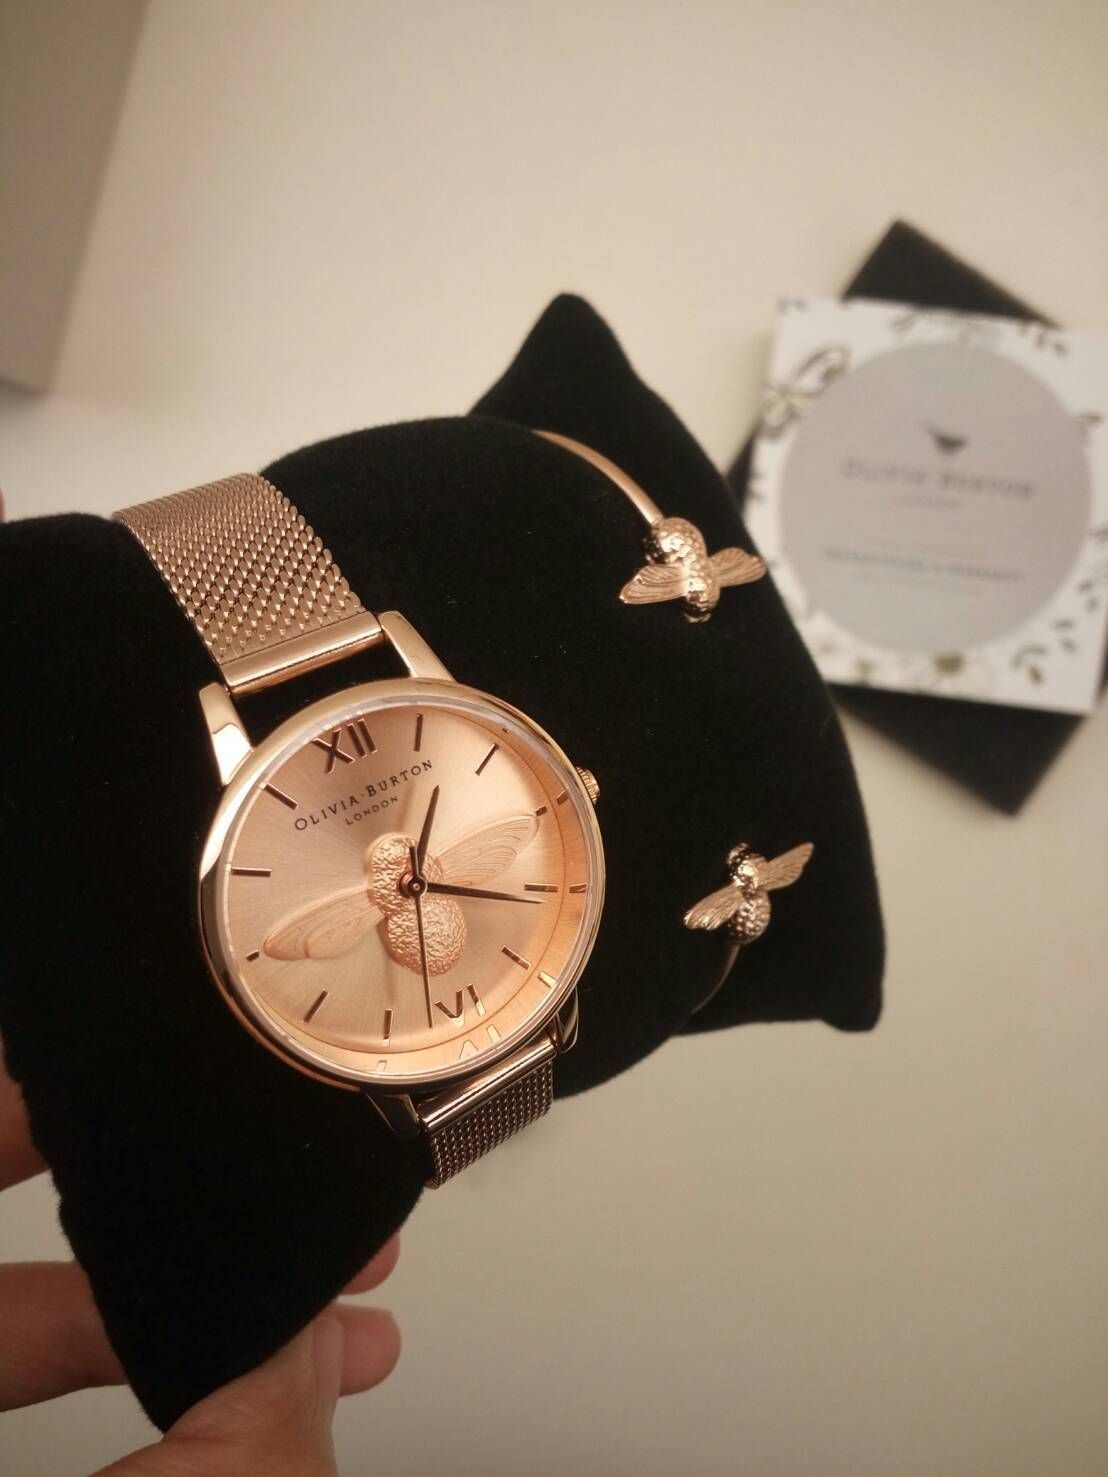 Olivia Burton Jam Tangan Wanita Luxury Daftar Harga Termurah Ori Bonia B796 3355 Stainless Steel Link Bracelet Bee On Time With The Newest Midi Dial Addition To Our Ever Popular 3d Collection